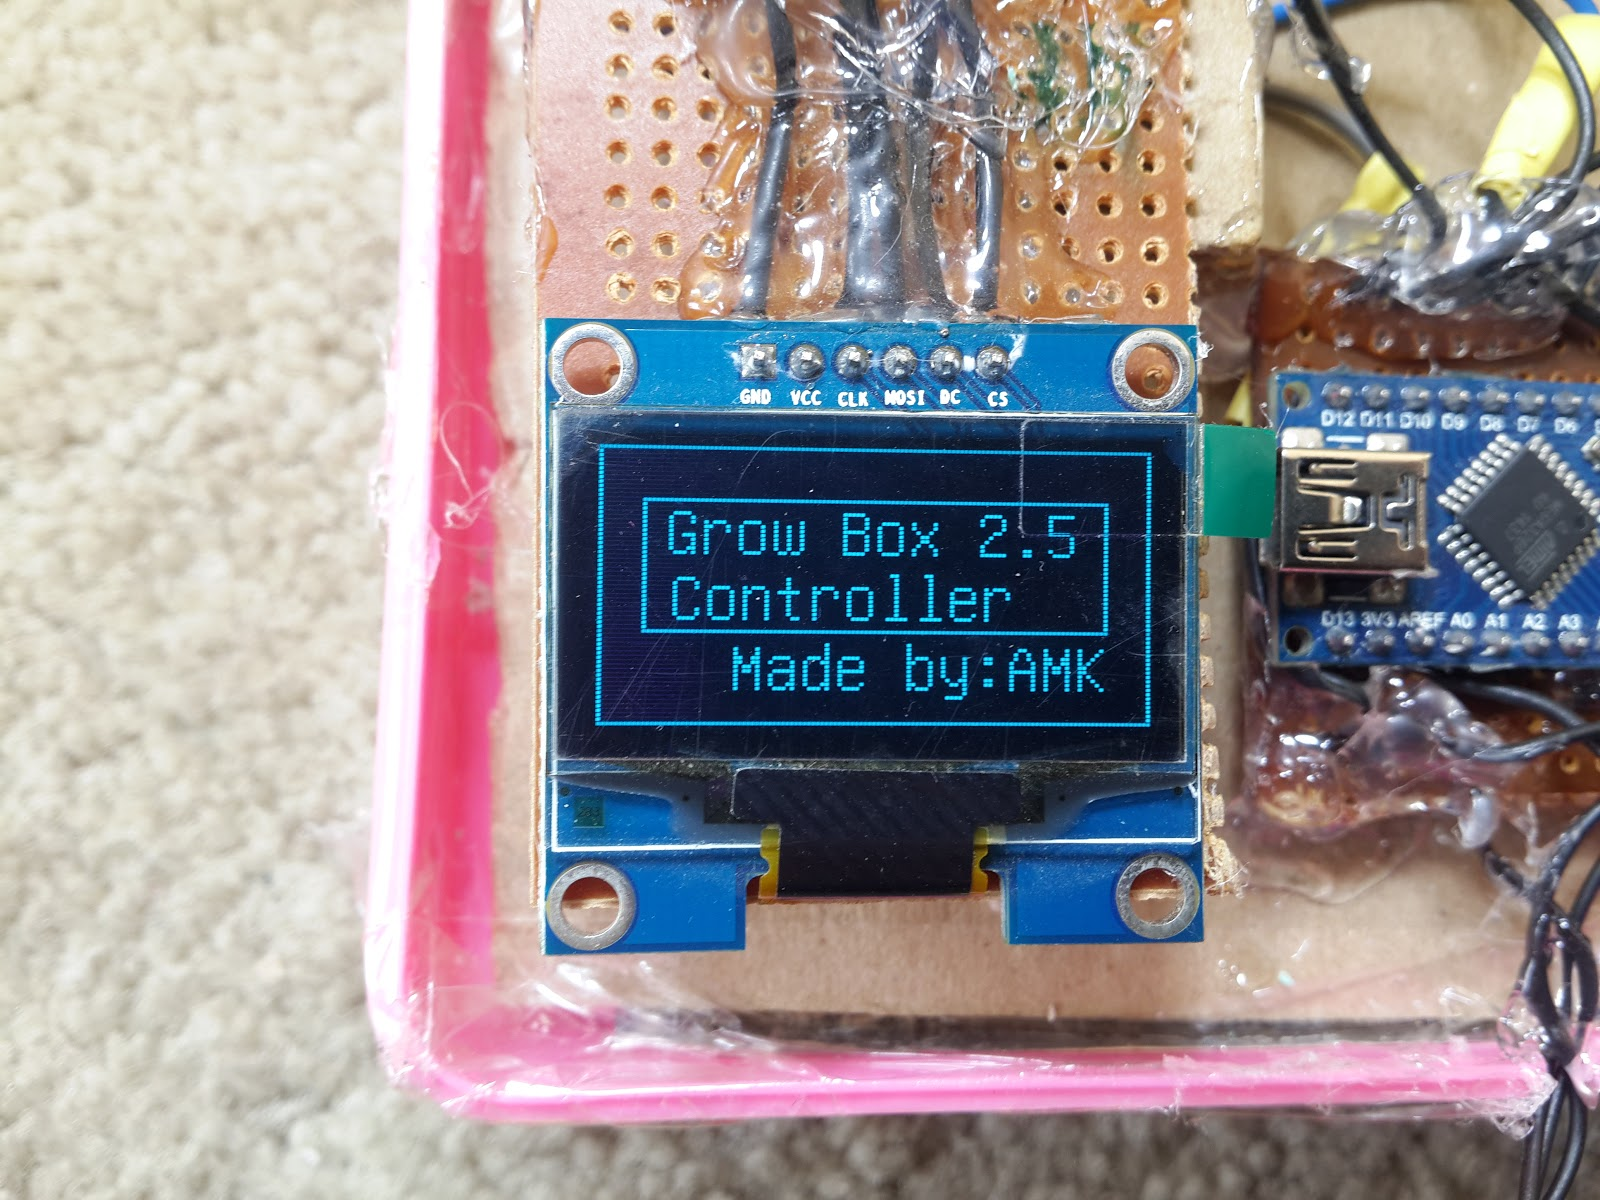 Diy projects diydo it yourself arduino nano micro it is made using an arduino nano micro controller a 10k thermistor a dht temperature and humidity sensor a real time clock a four channel relay module solutioingenieria Images